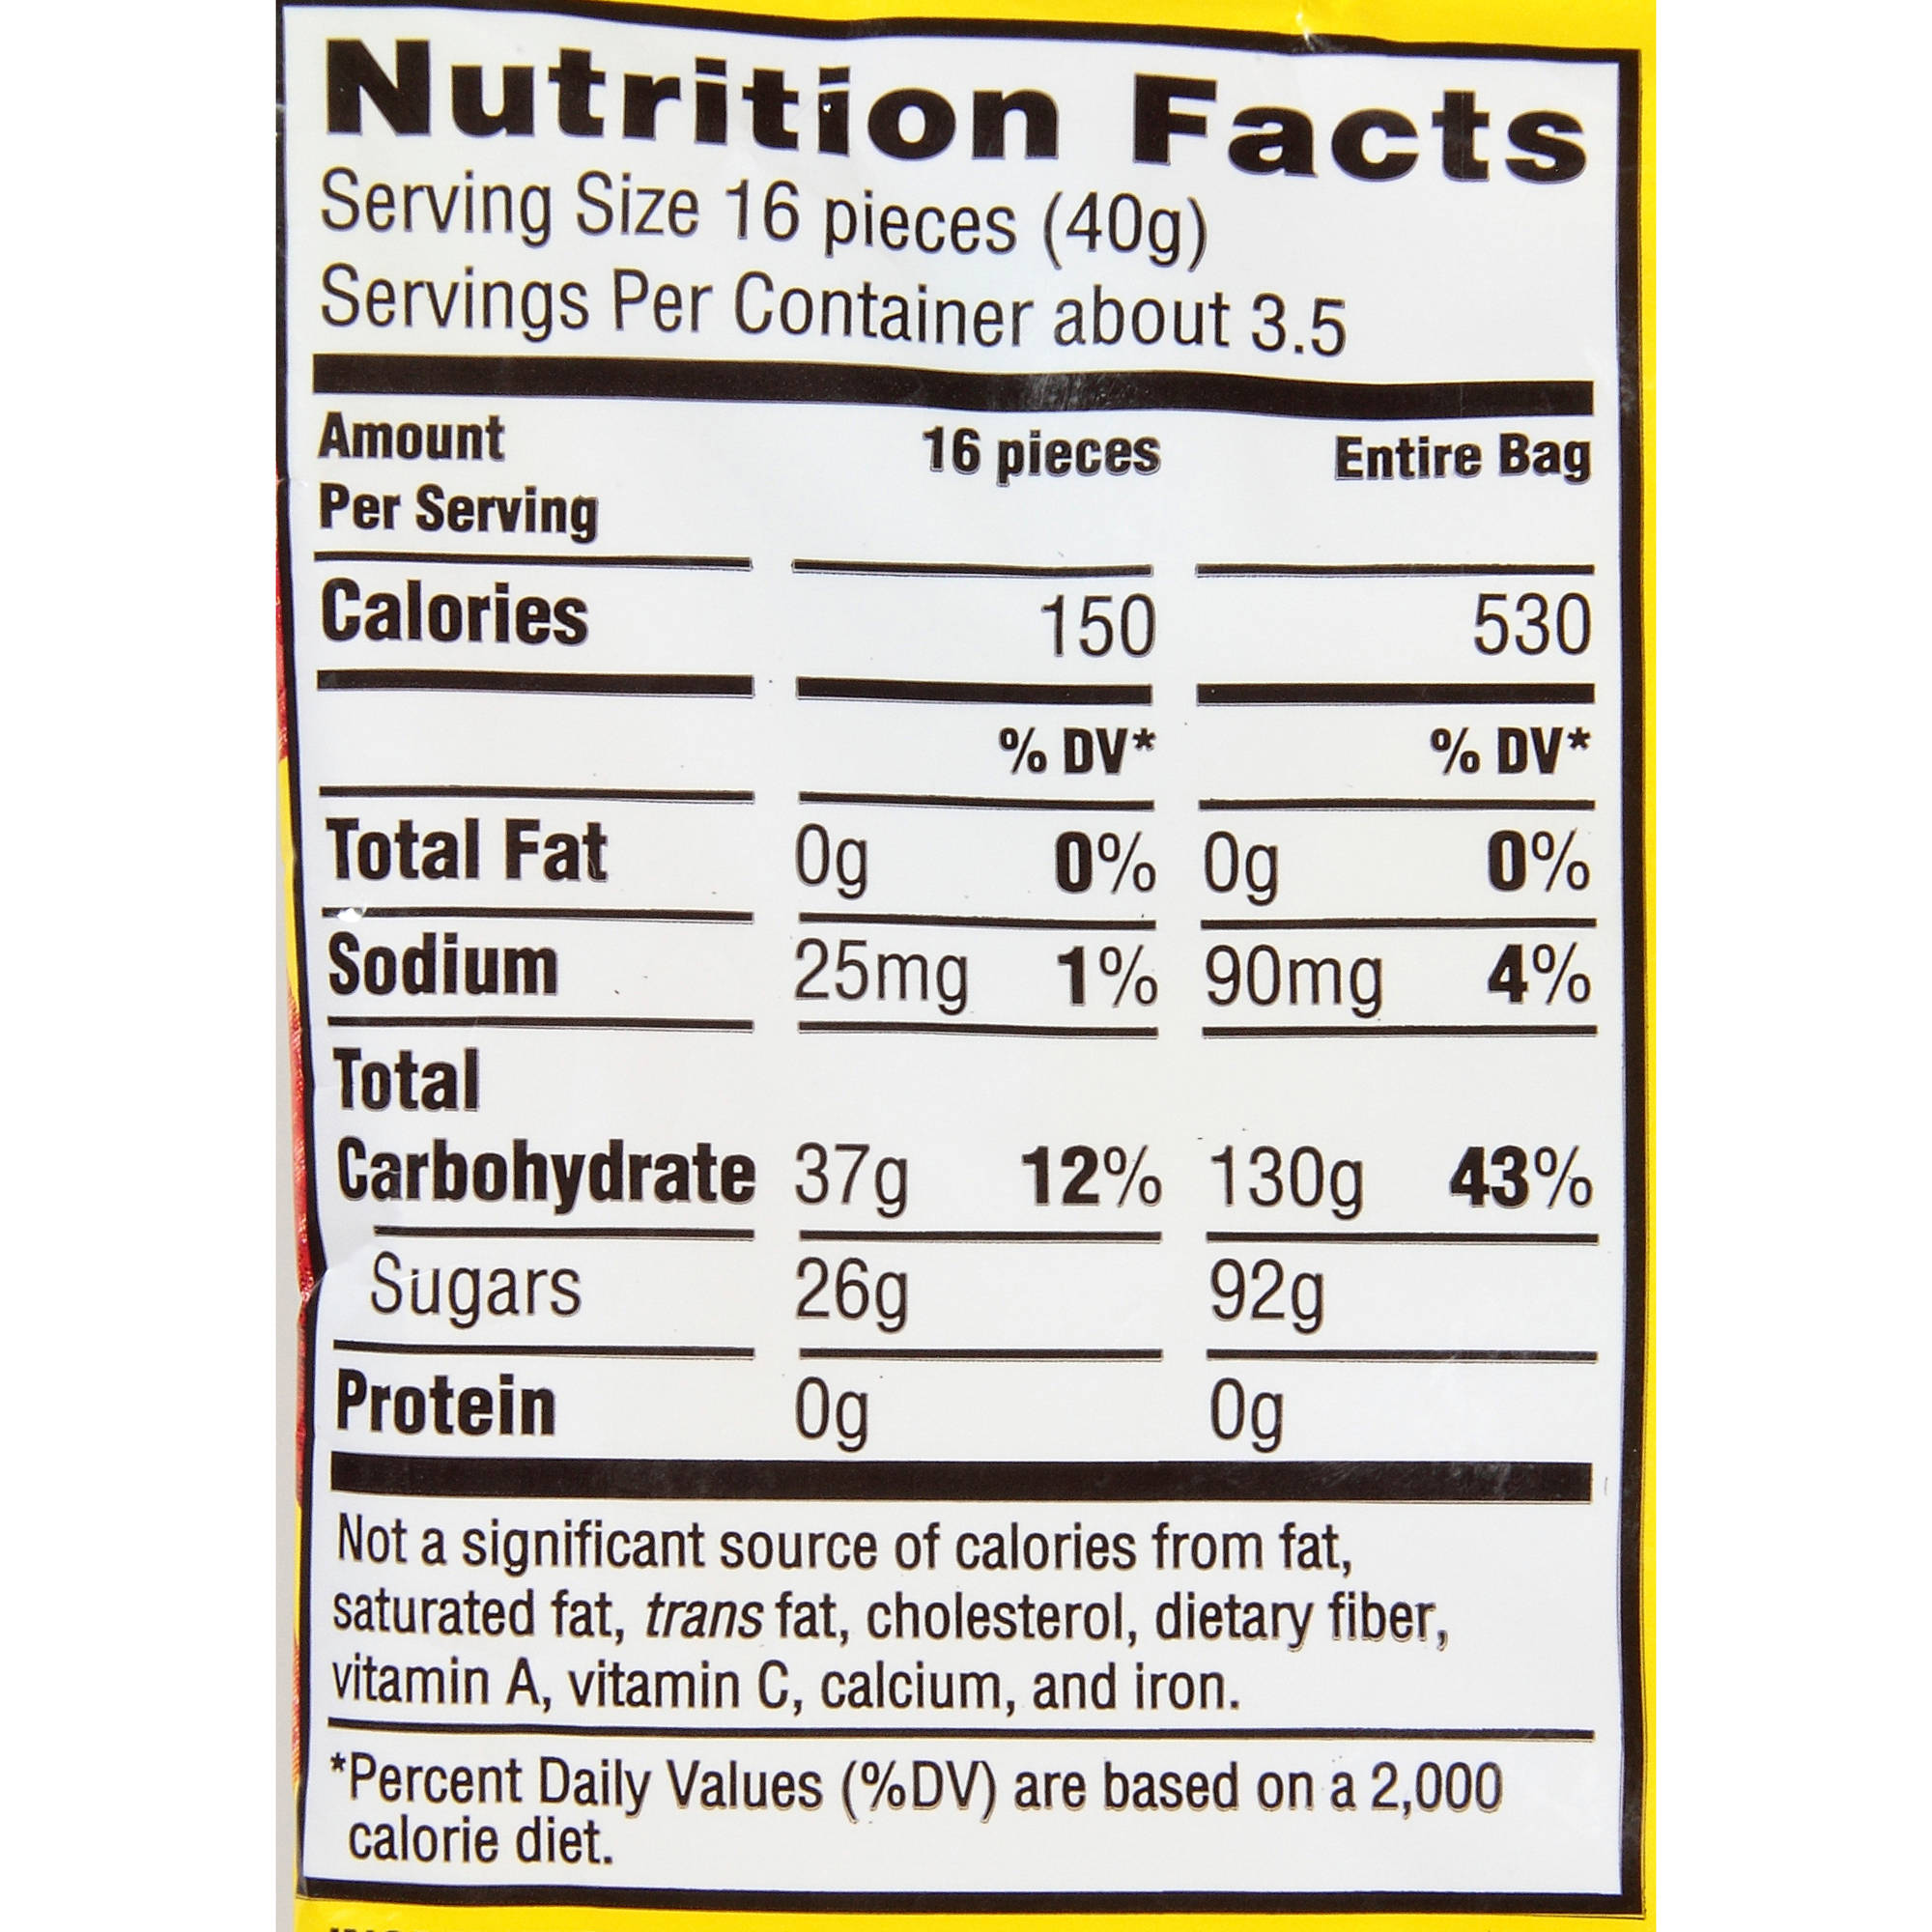 Nutrition Facts For Sour Patch Kids Candy